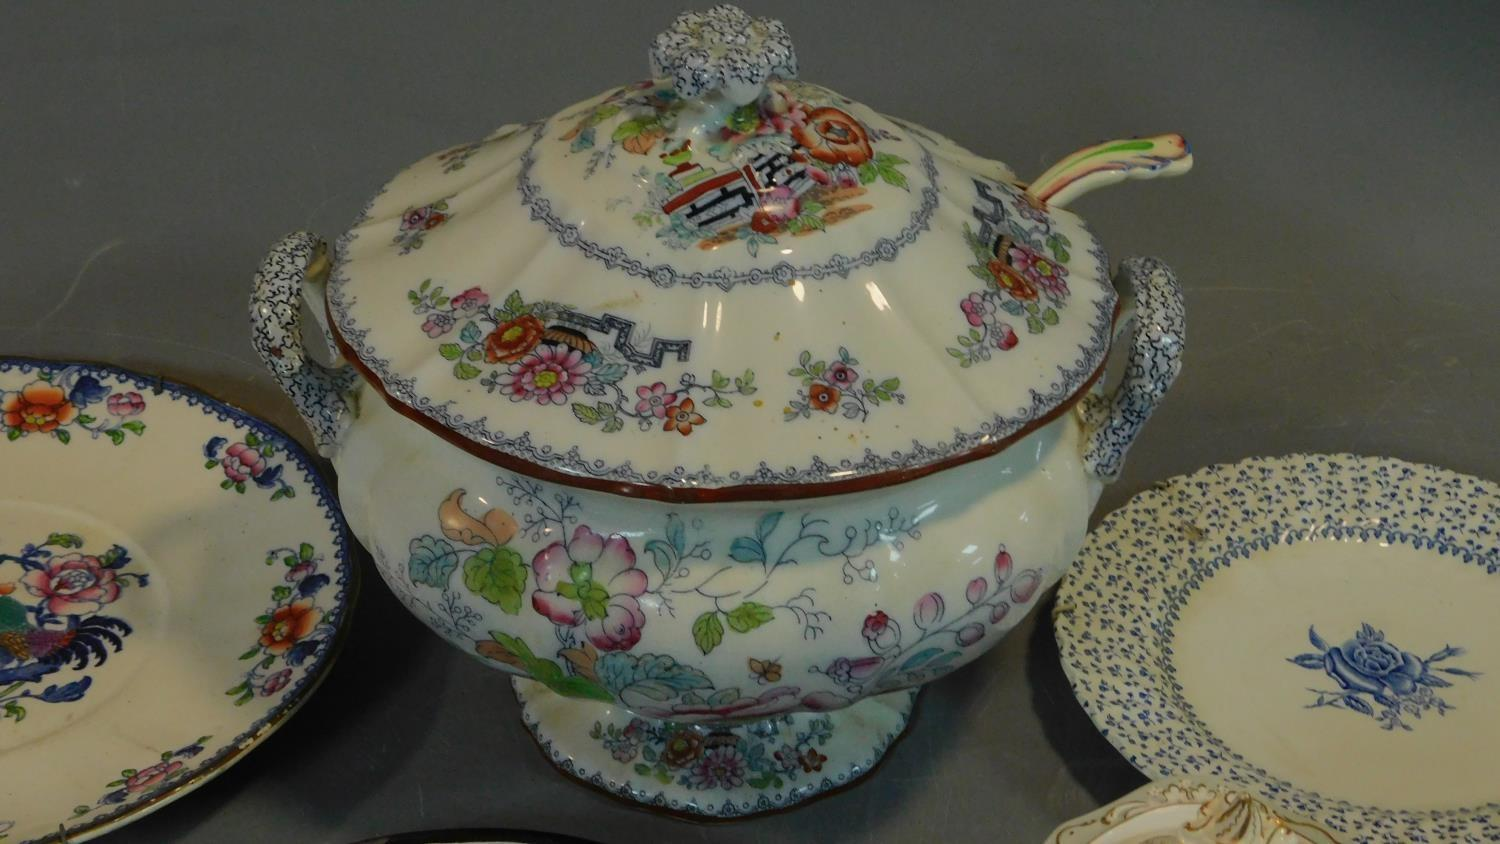 A 19th century Staffordshire ironstone tureen and cover (associated ladle) and various other - Image 9 of 18